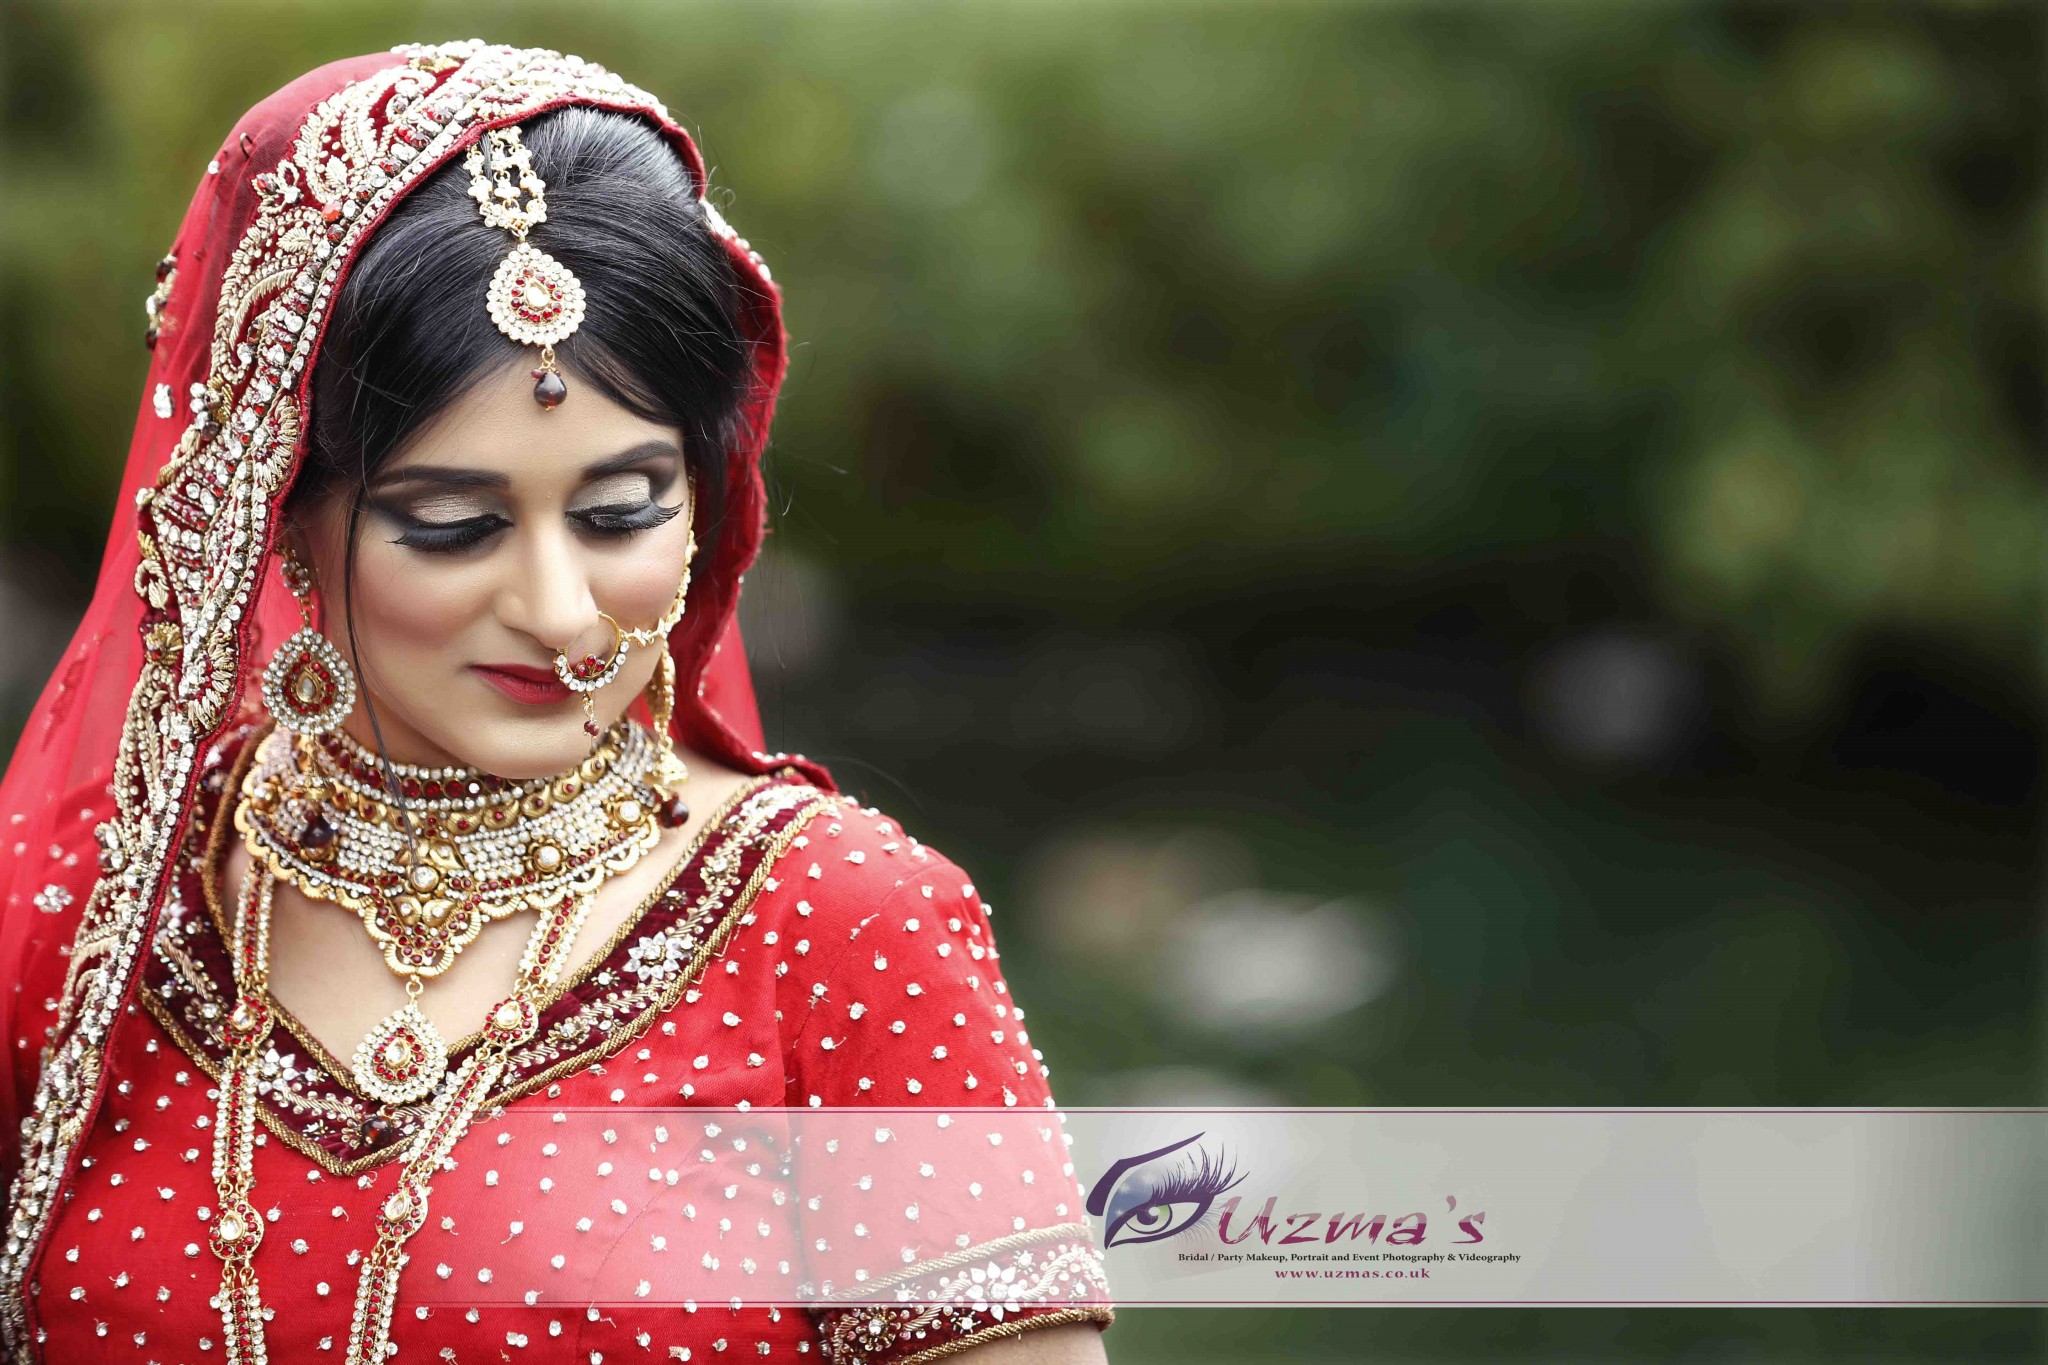 asian bridal makeup and wedding photography - Asian Wedding Uk Magazine